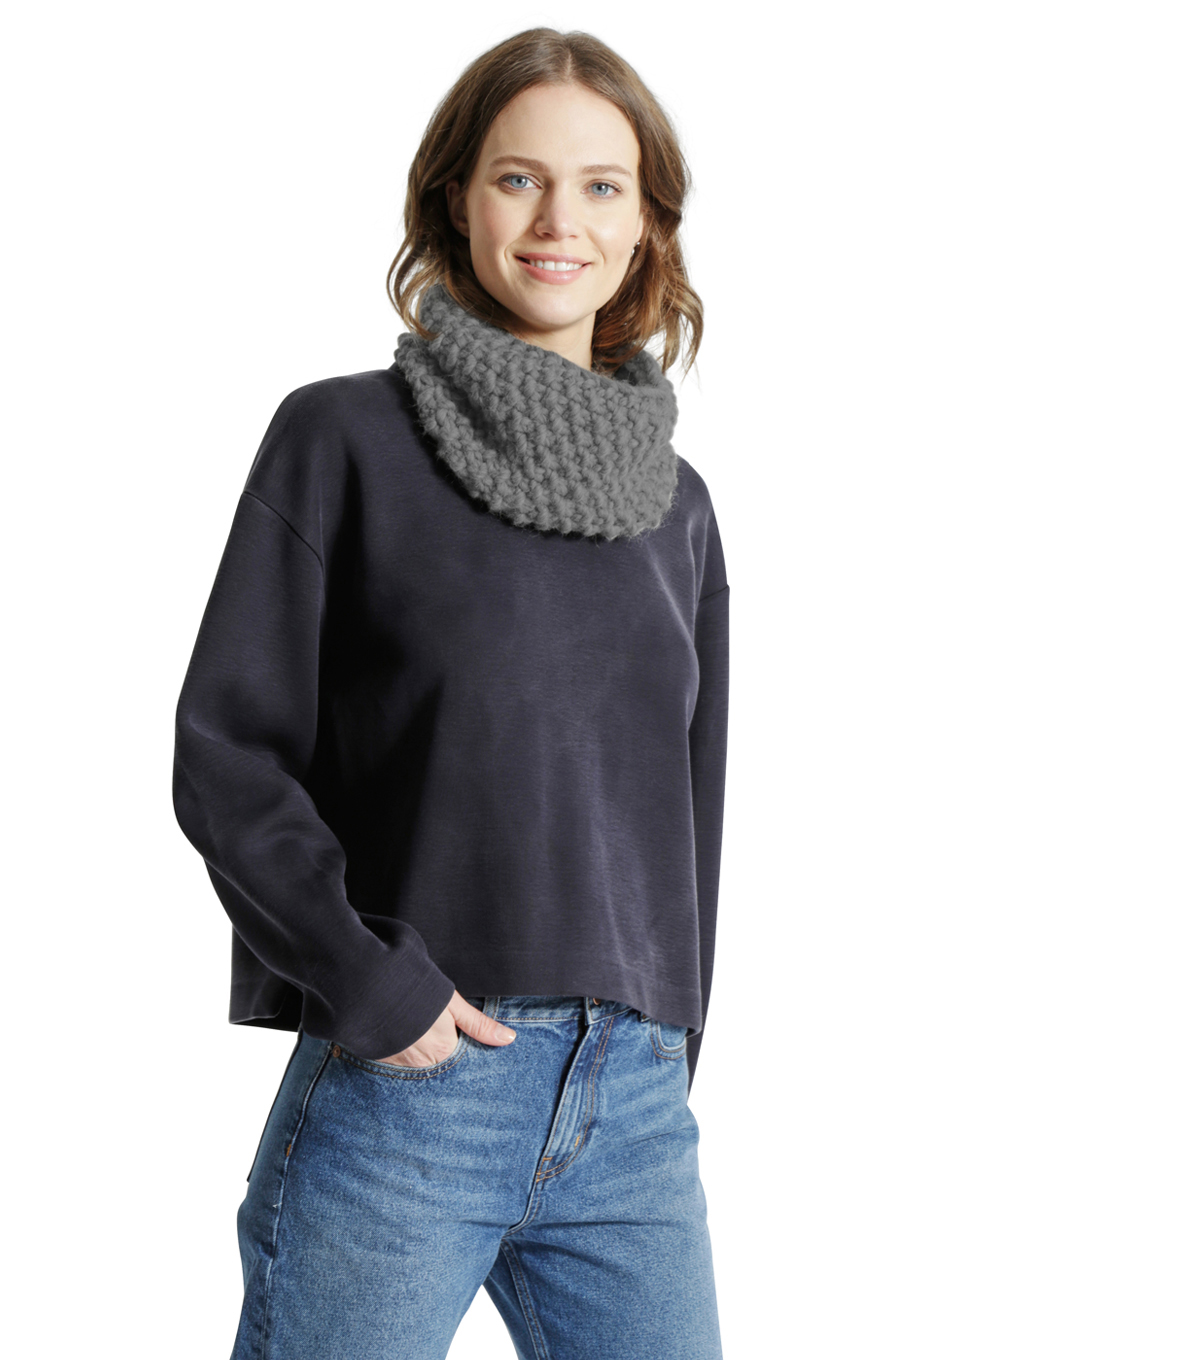 Wool And The Gang \u0027Lil Snood Dogg Knit Kit-Tweed Gray